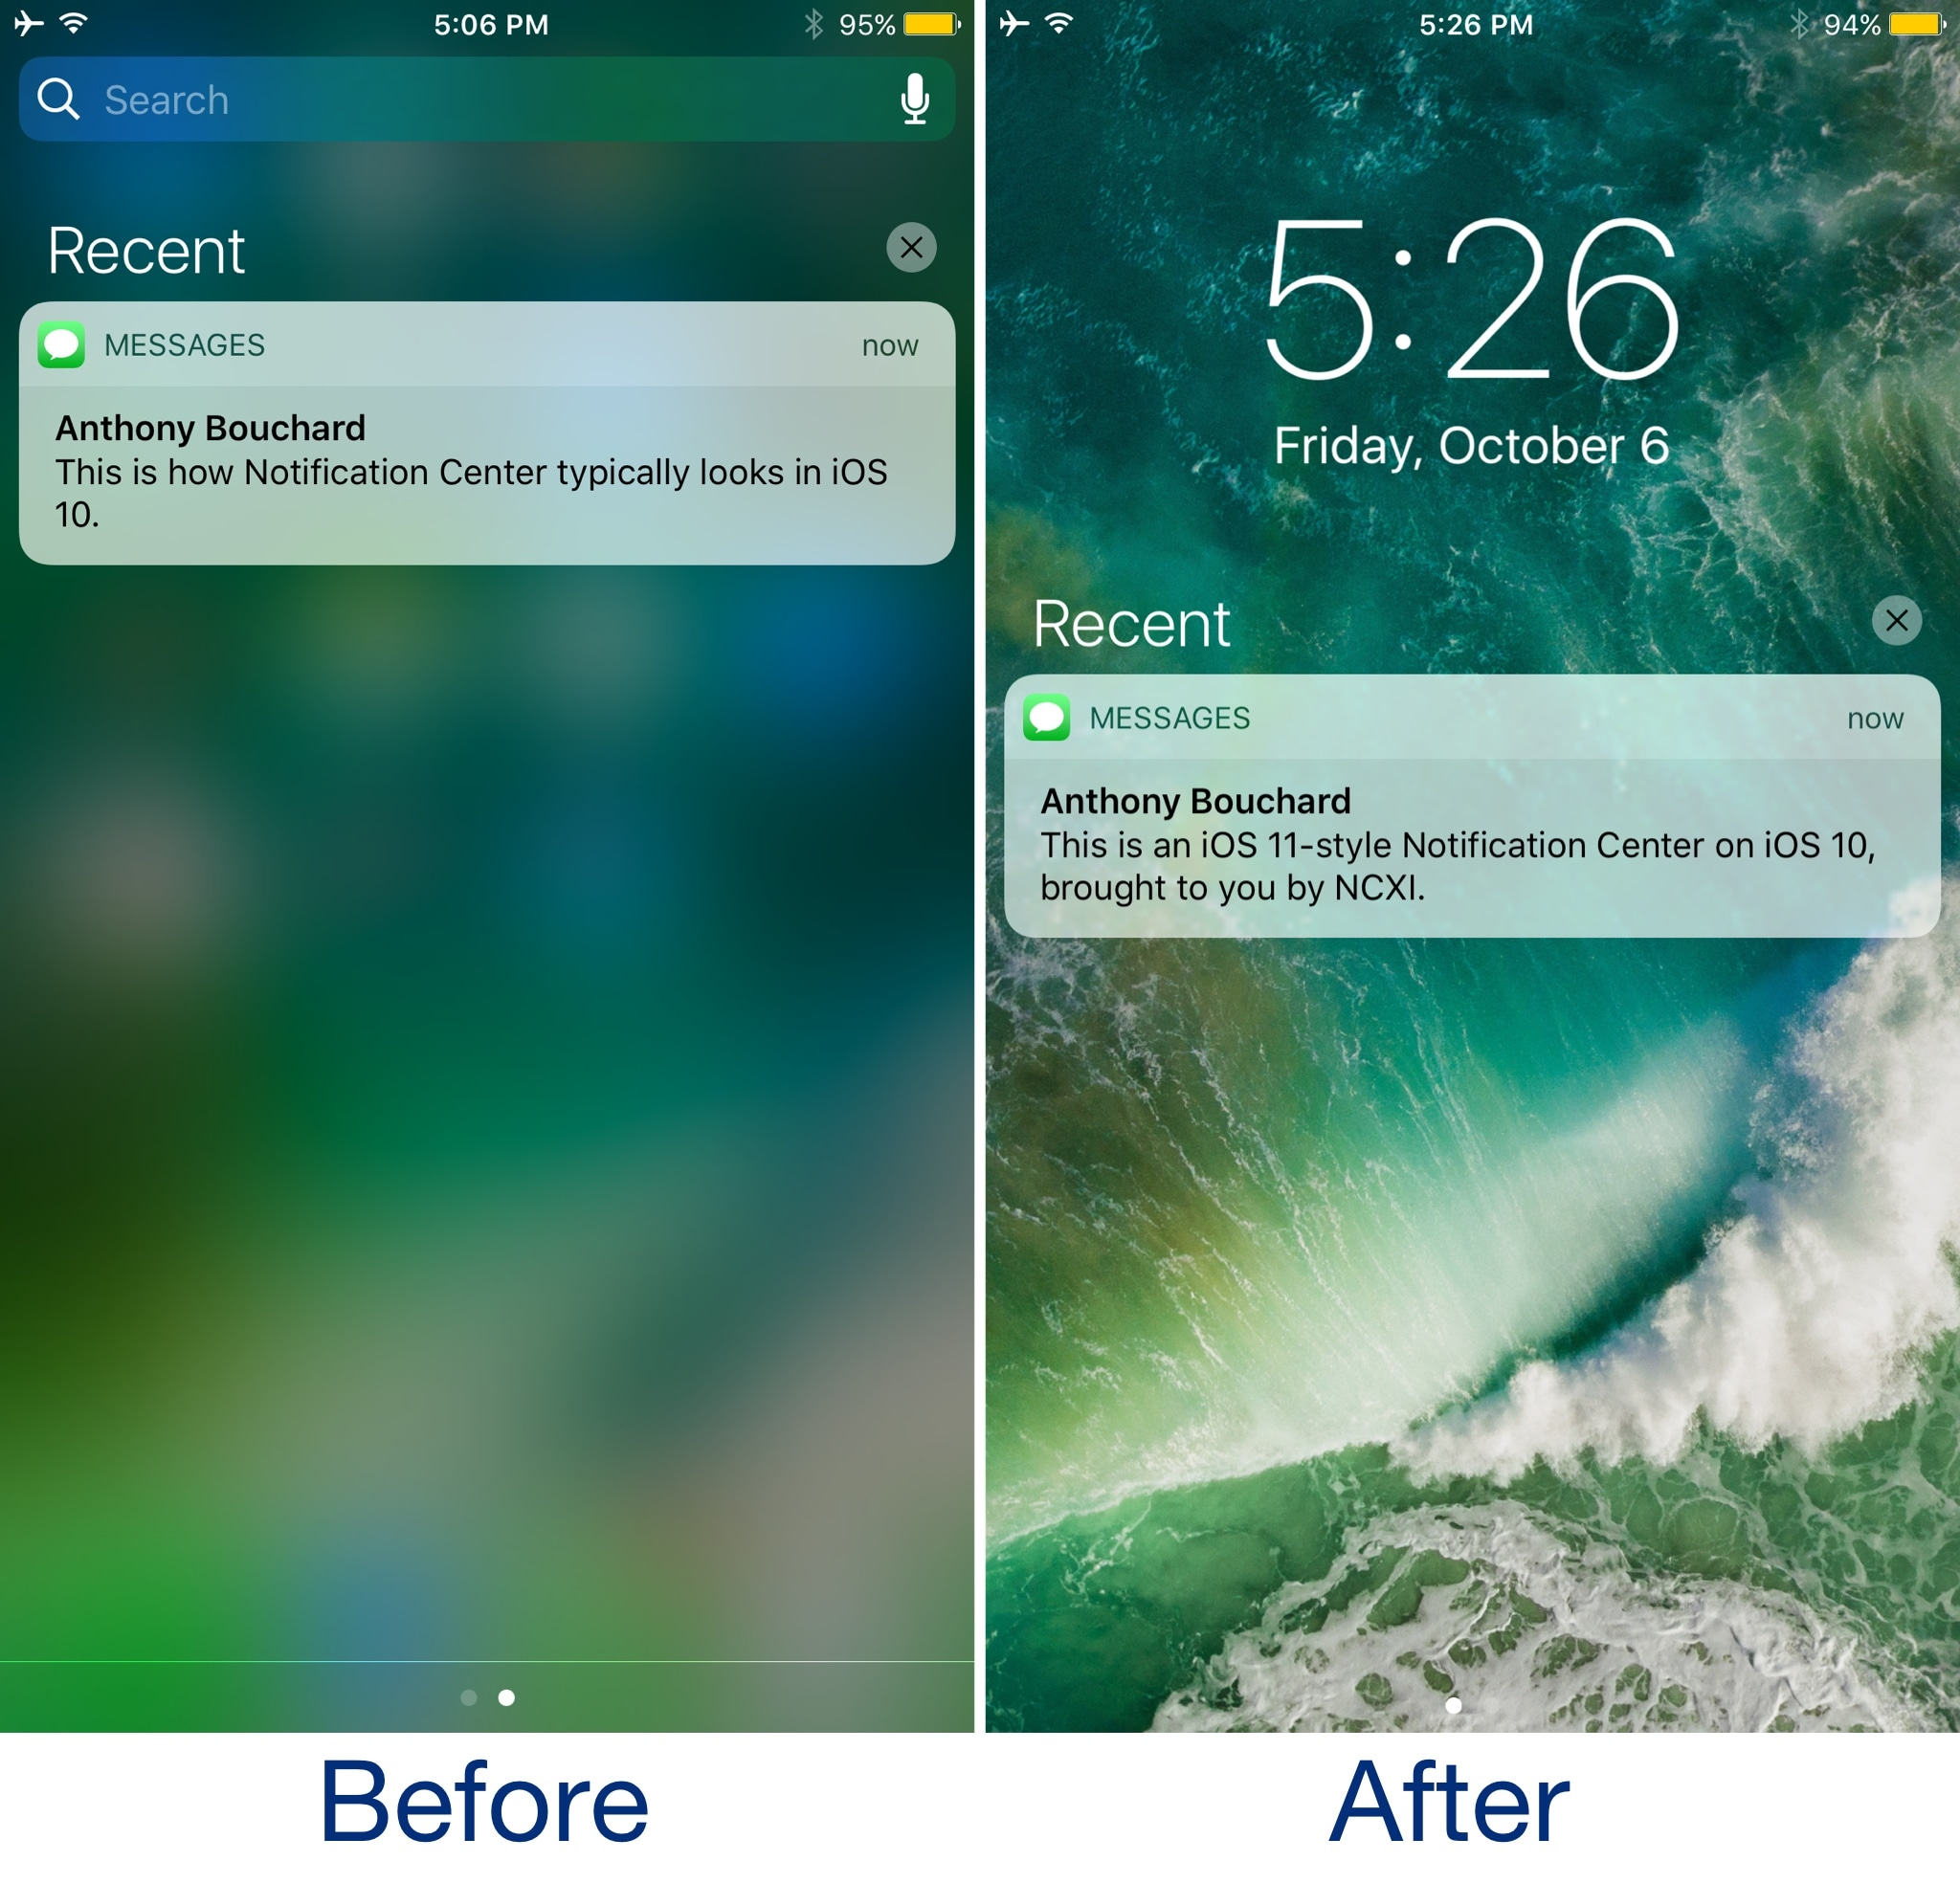 Mimic the iOS 11 experience on your jailbroken device with these tweaks